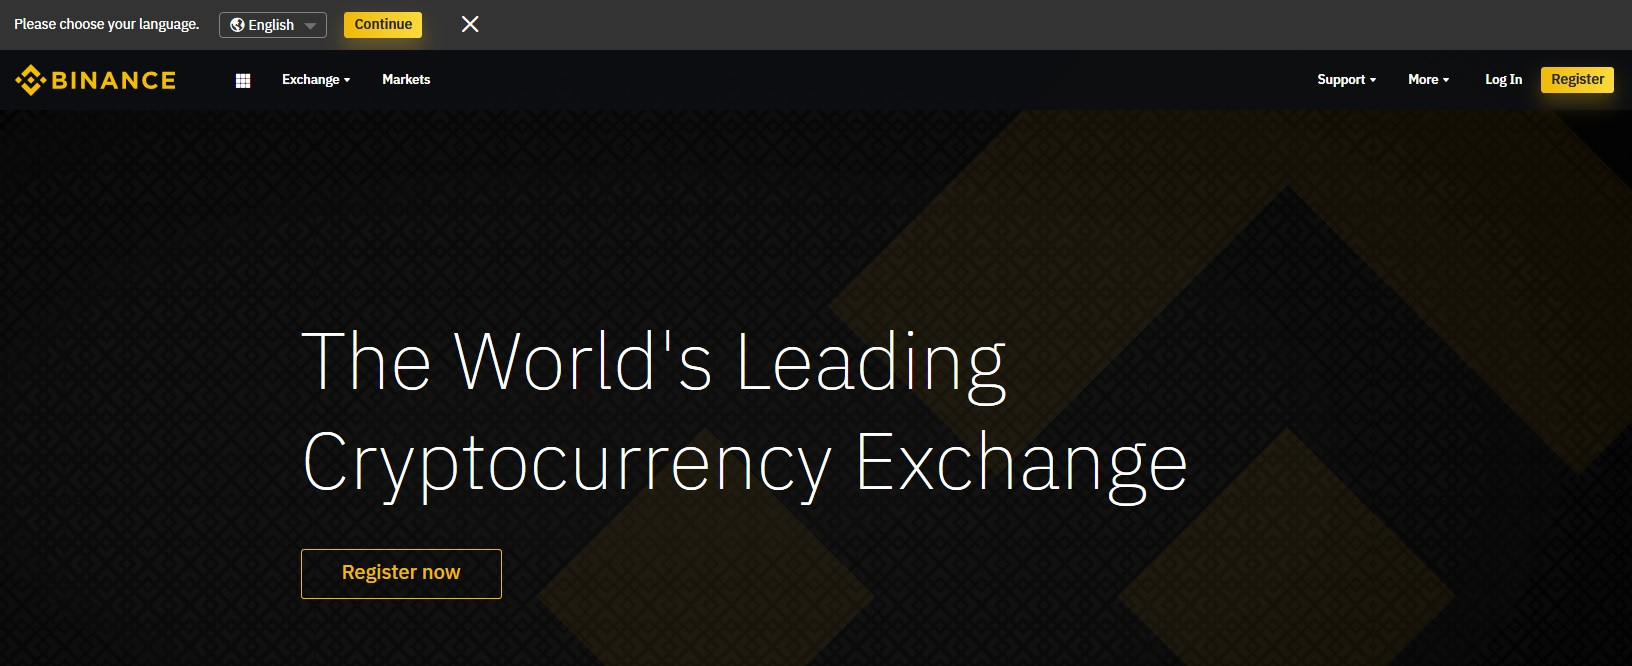 binance front page 7/19